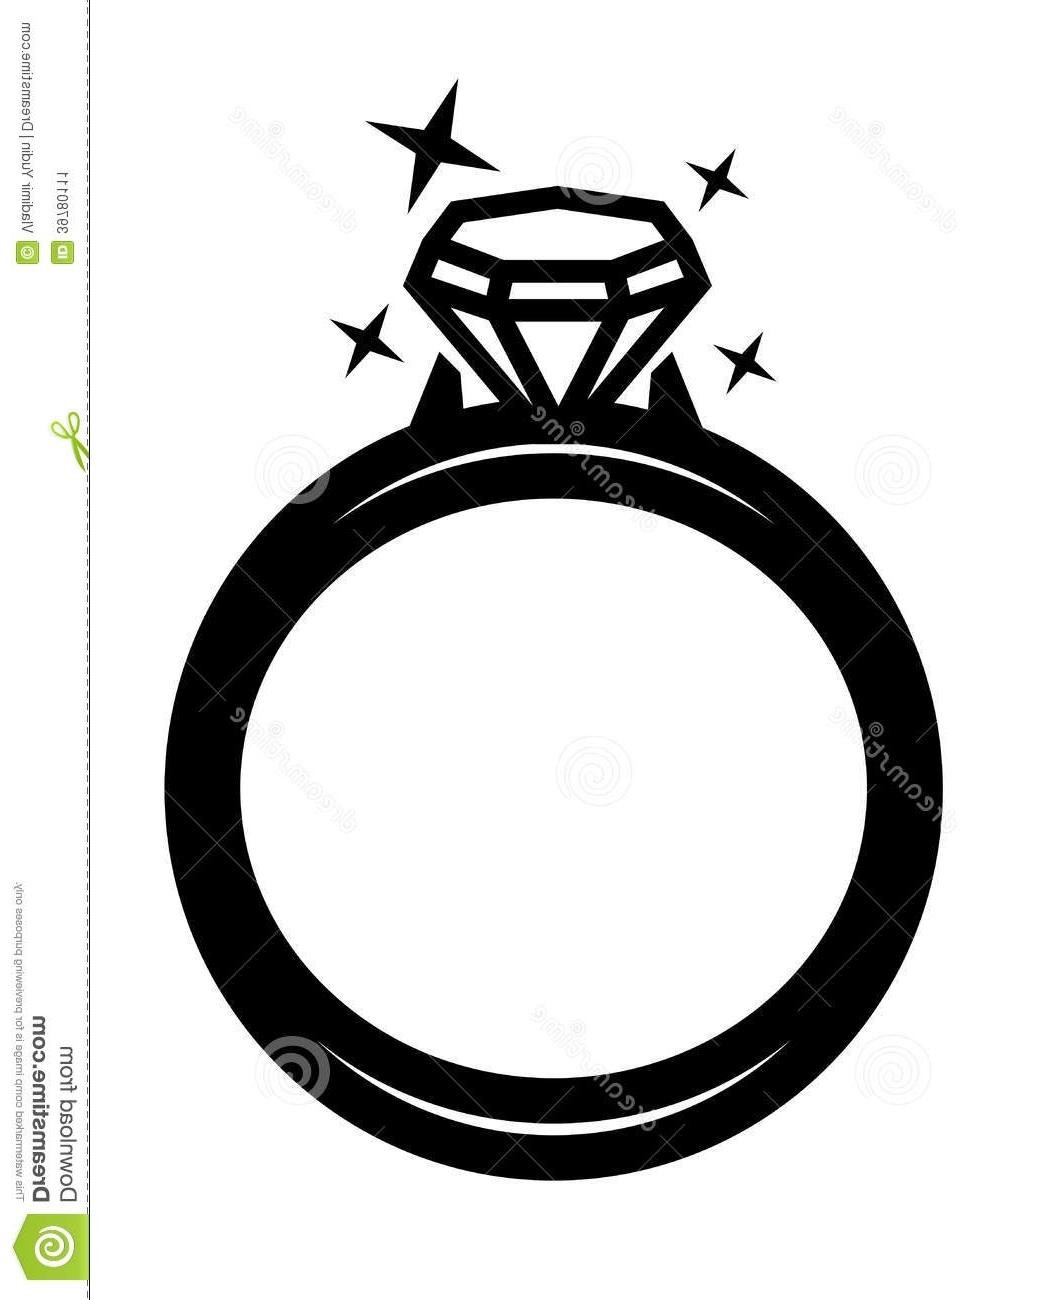 1043x1300 Wedding Ring Silhouette Clip Art Wedding Ring Silhouette